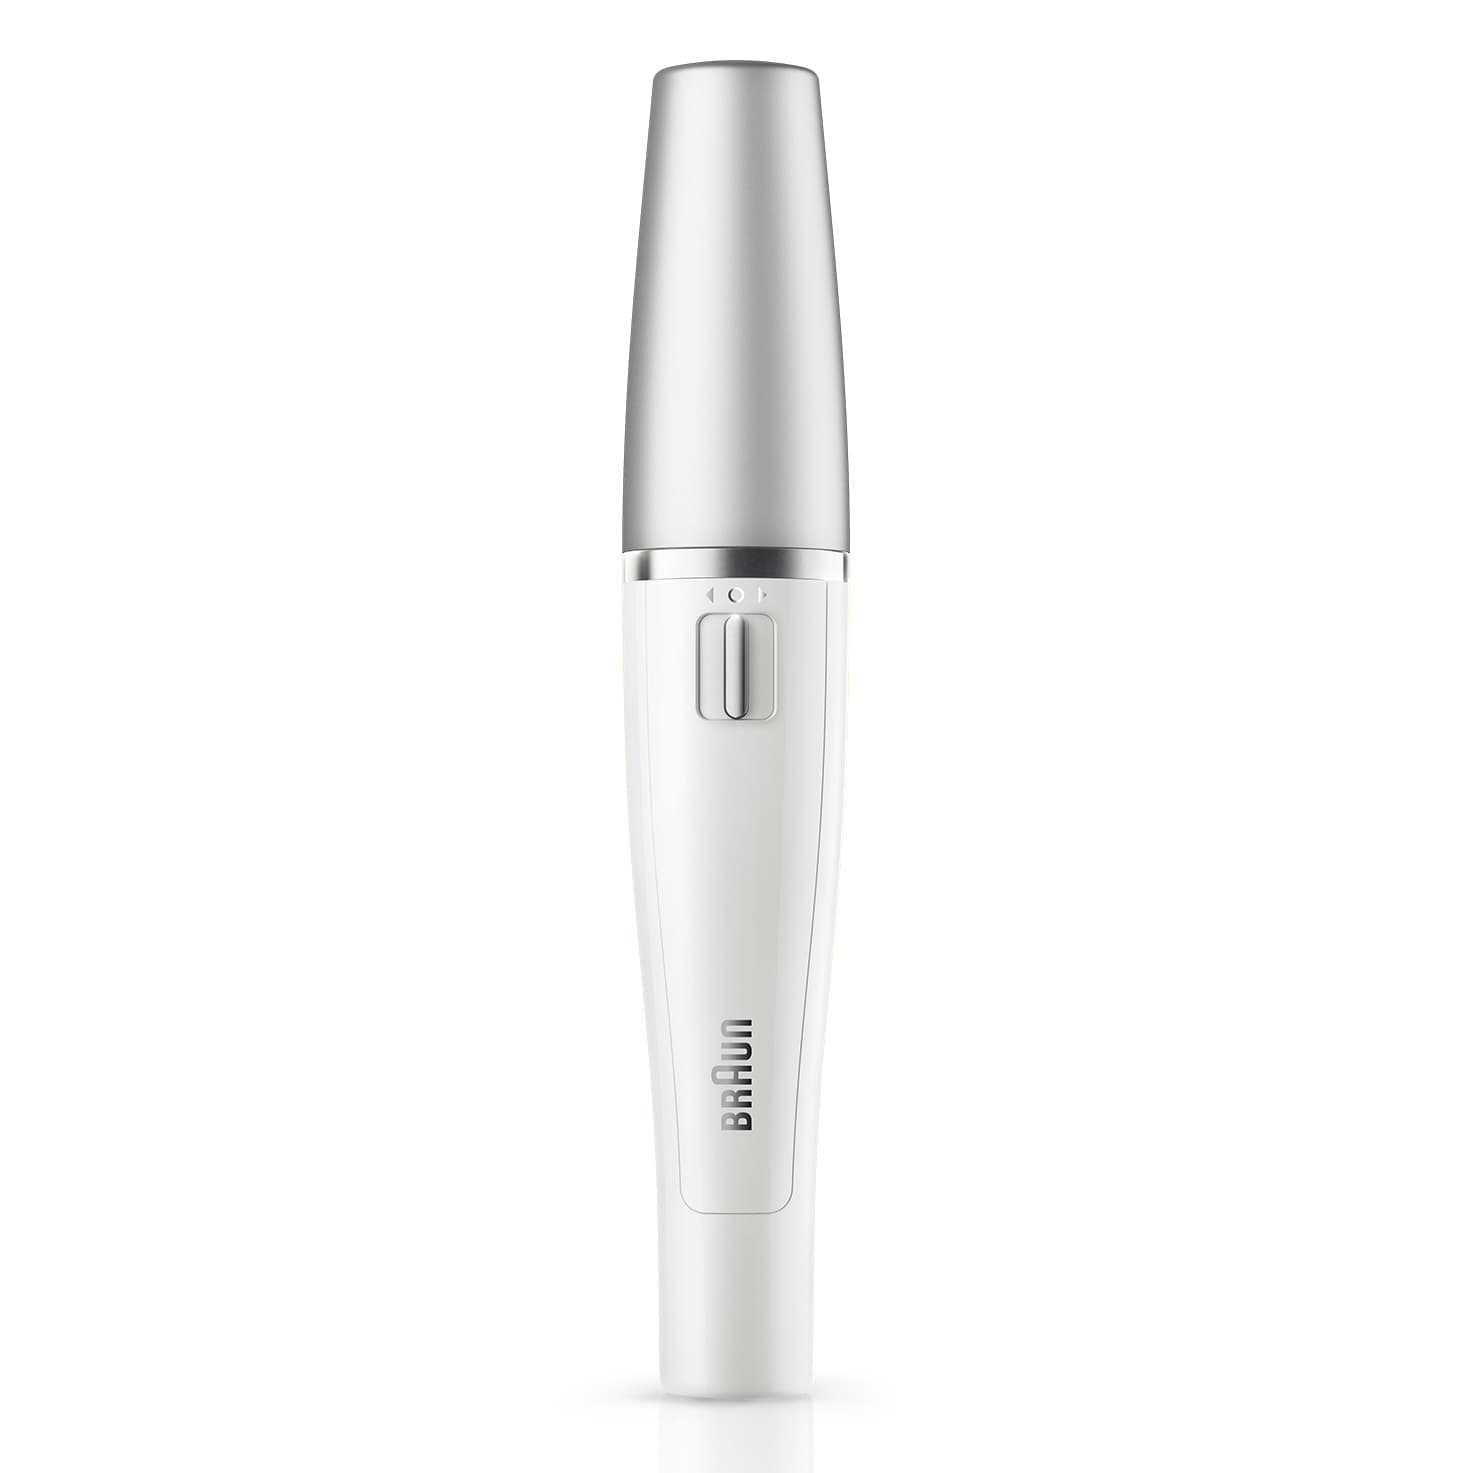 Braun Face 830 Premium Edition - facial epilator